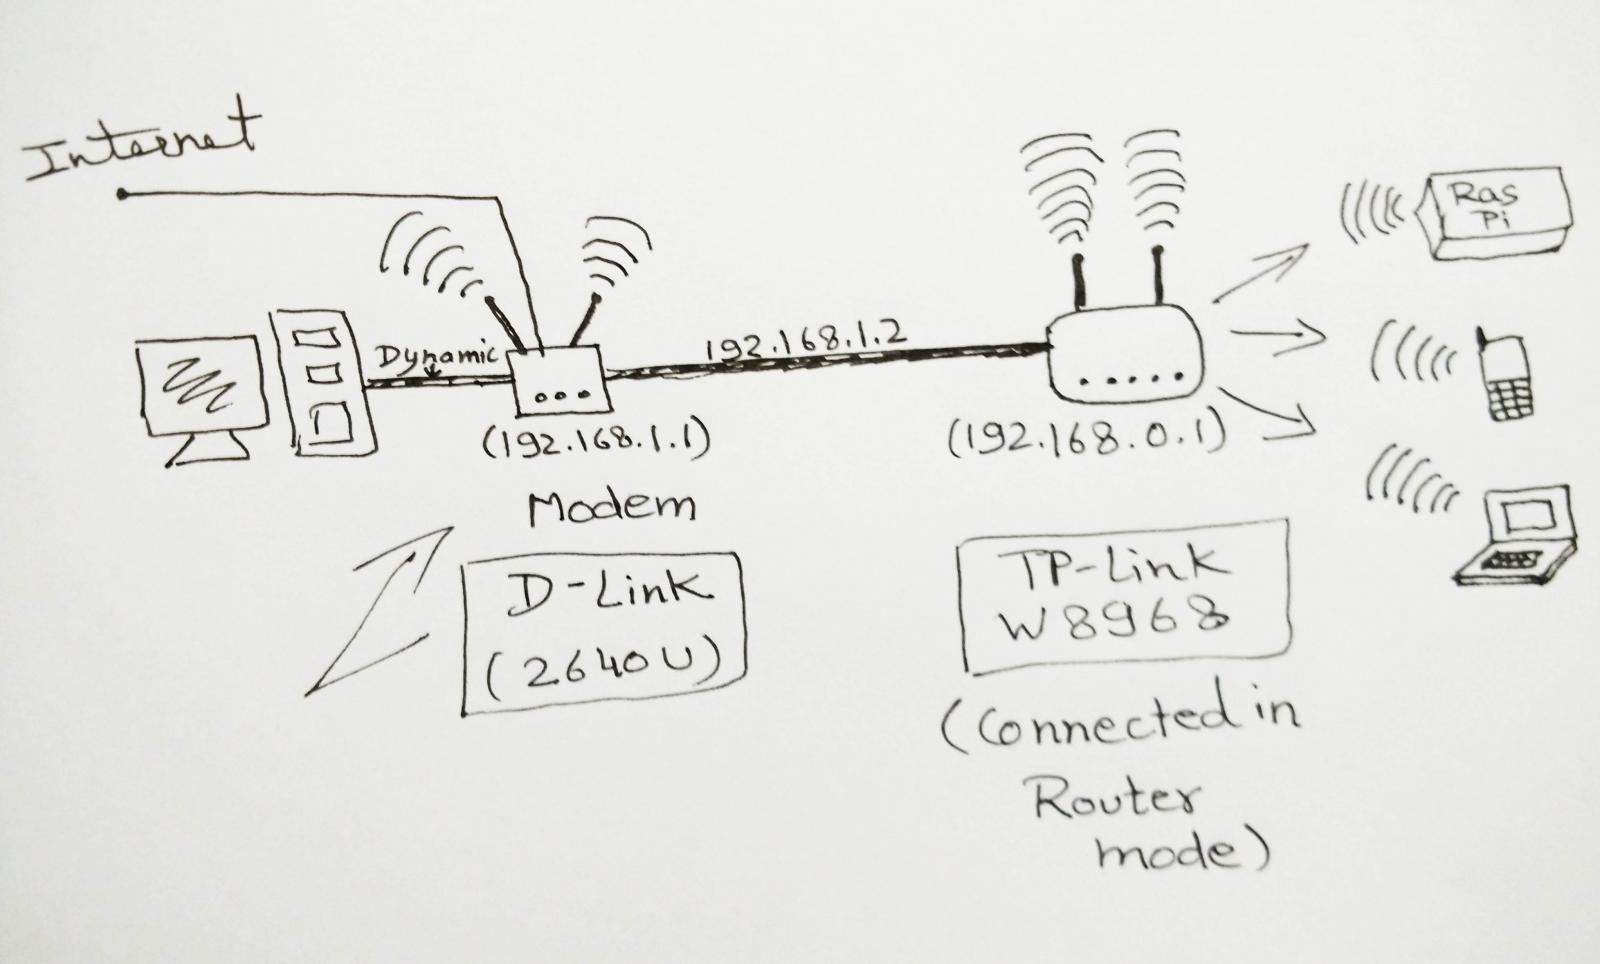 hight resolution of networking accessing router from another router modem super user network scheme slave router home network wiring diagram